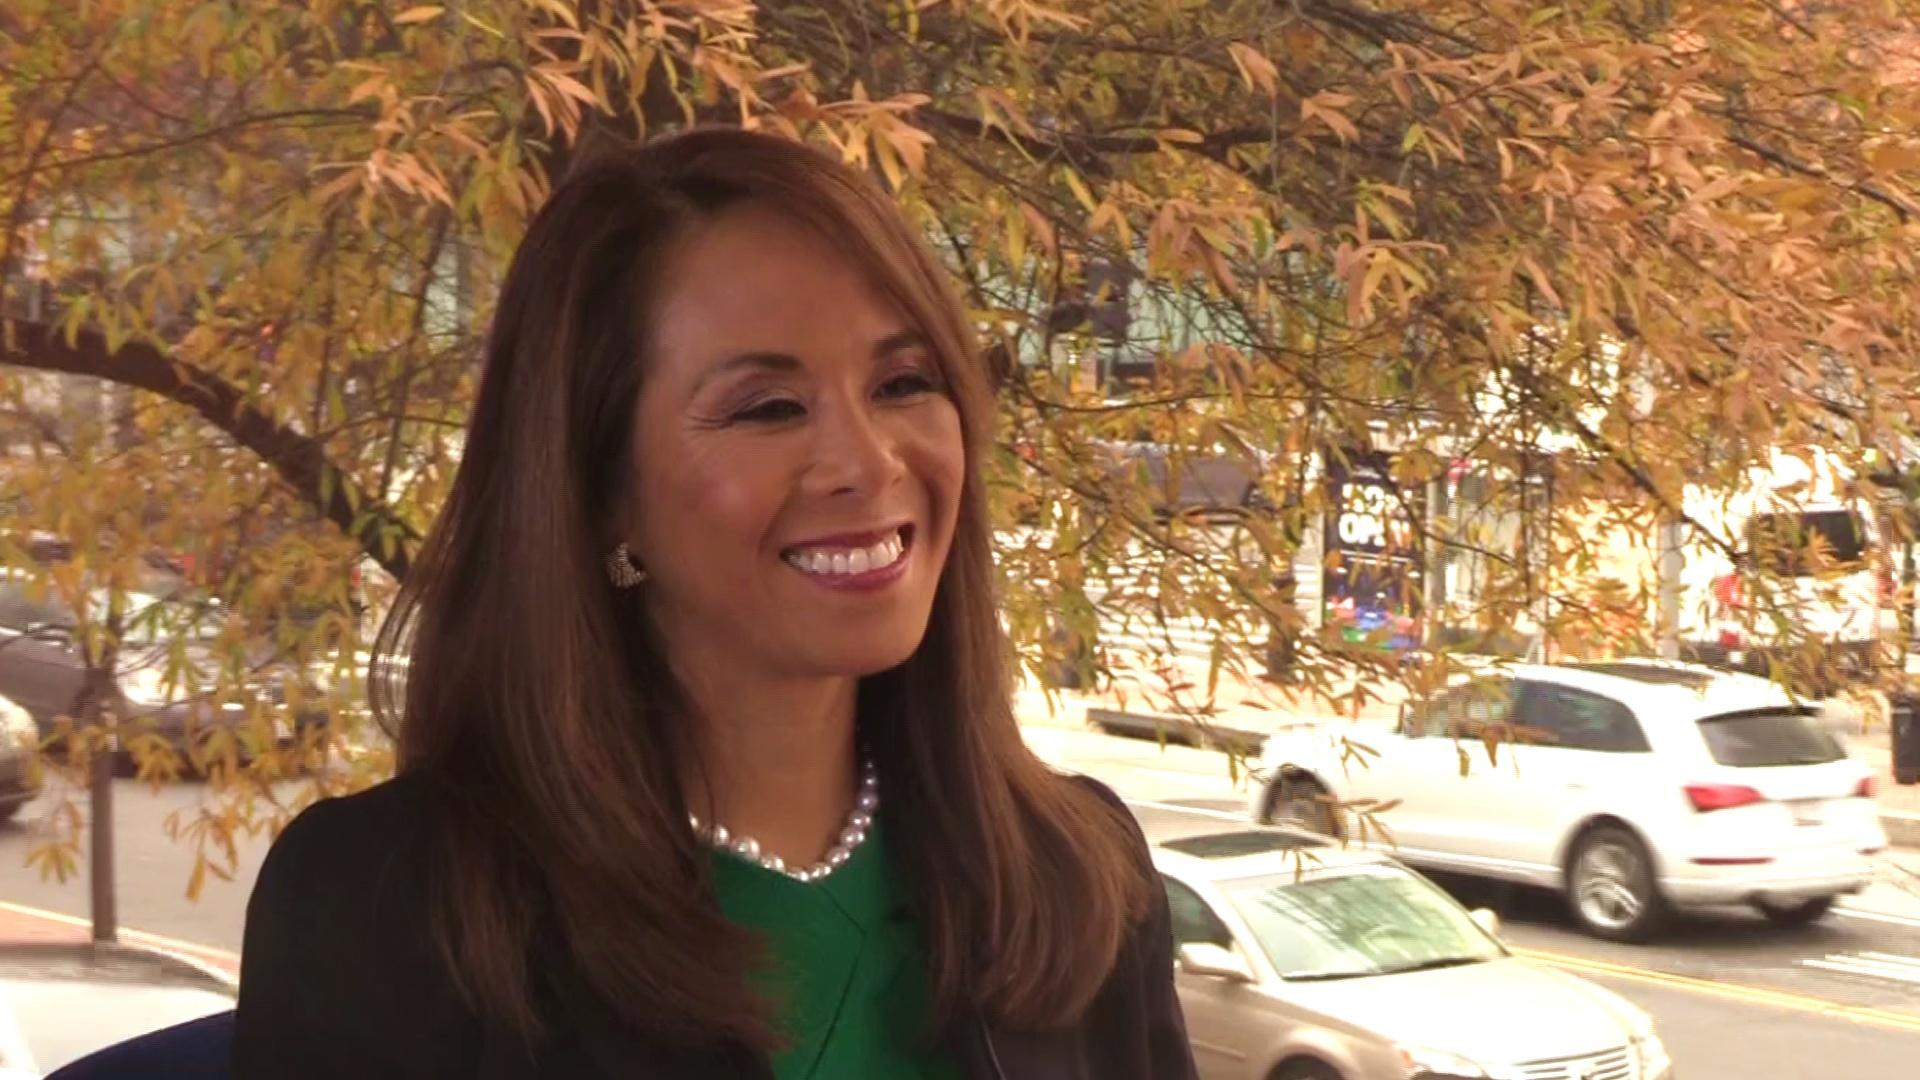 Woman Thought Leader: Irene Bueno